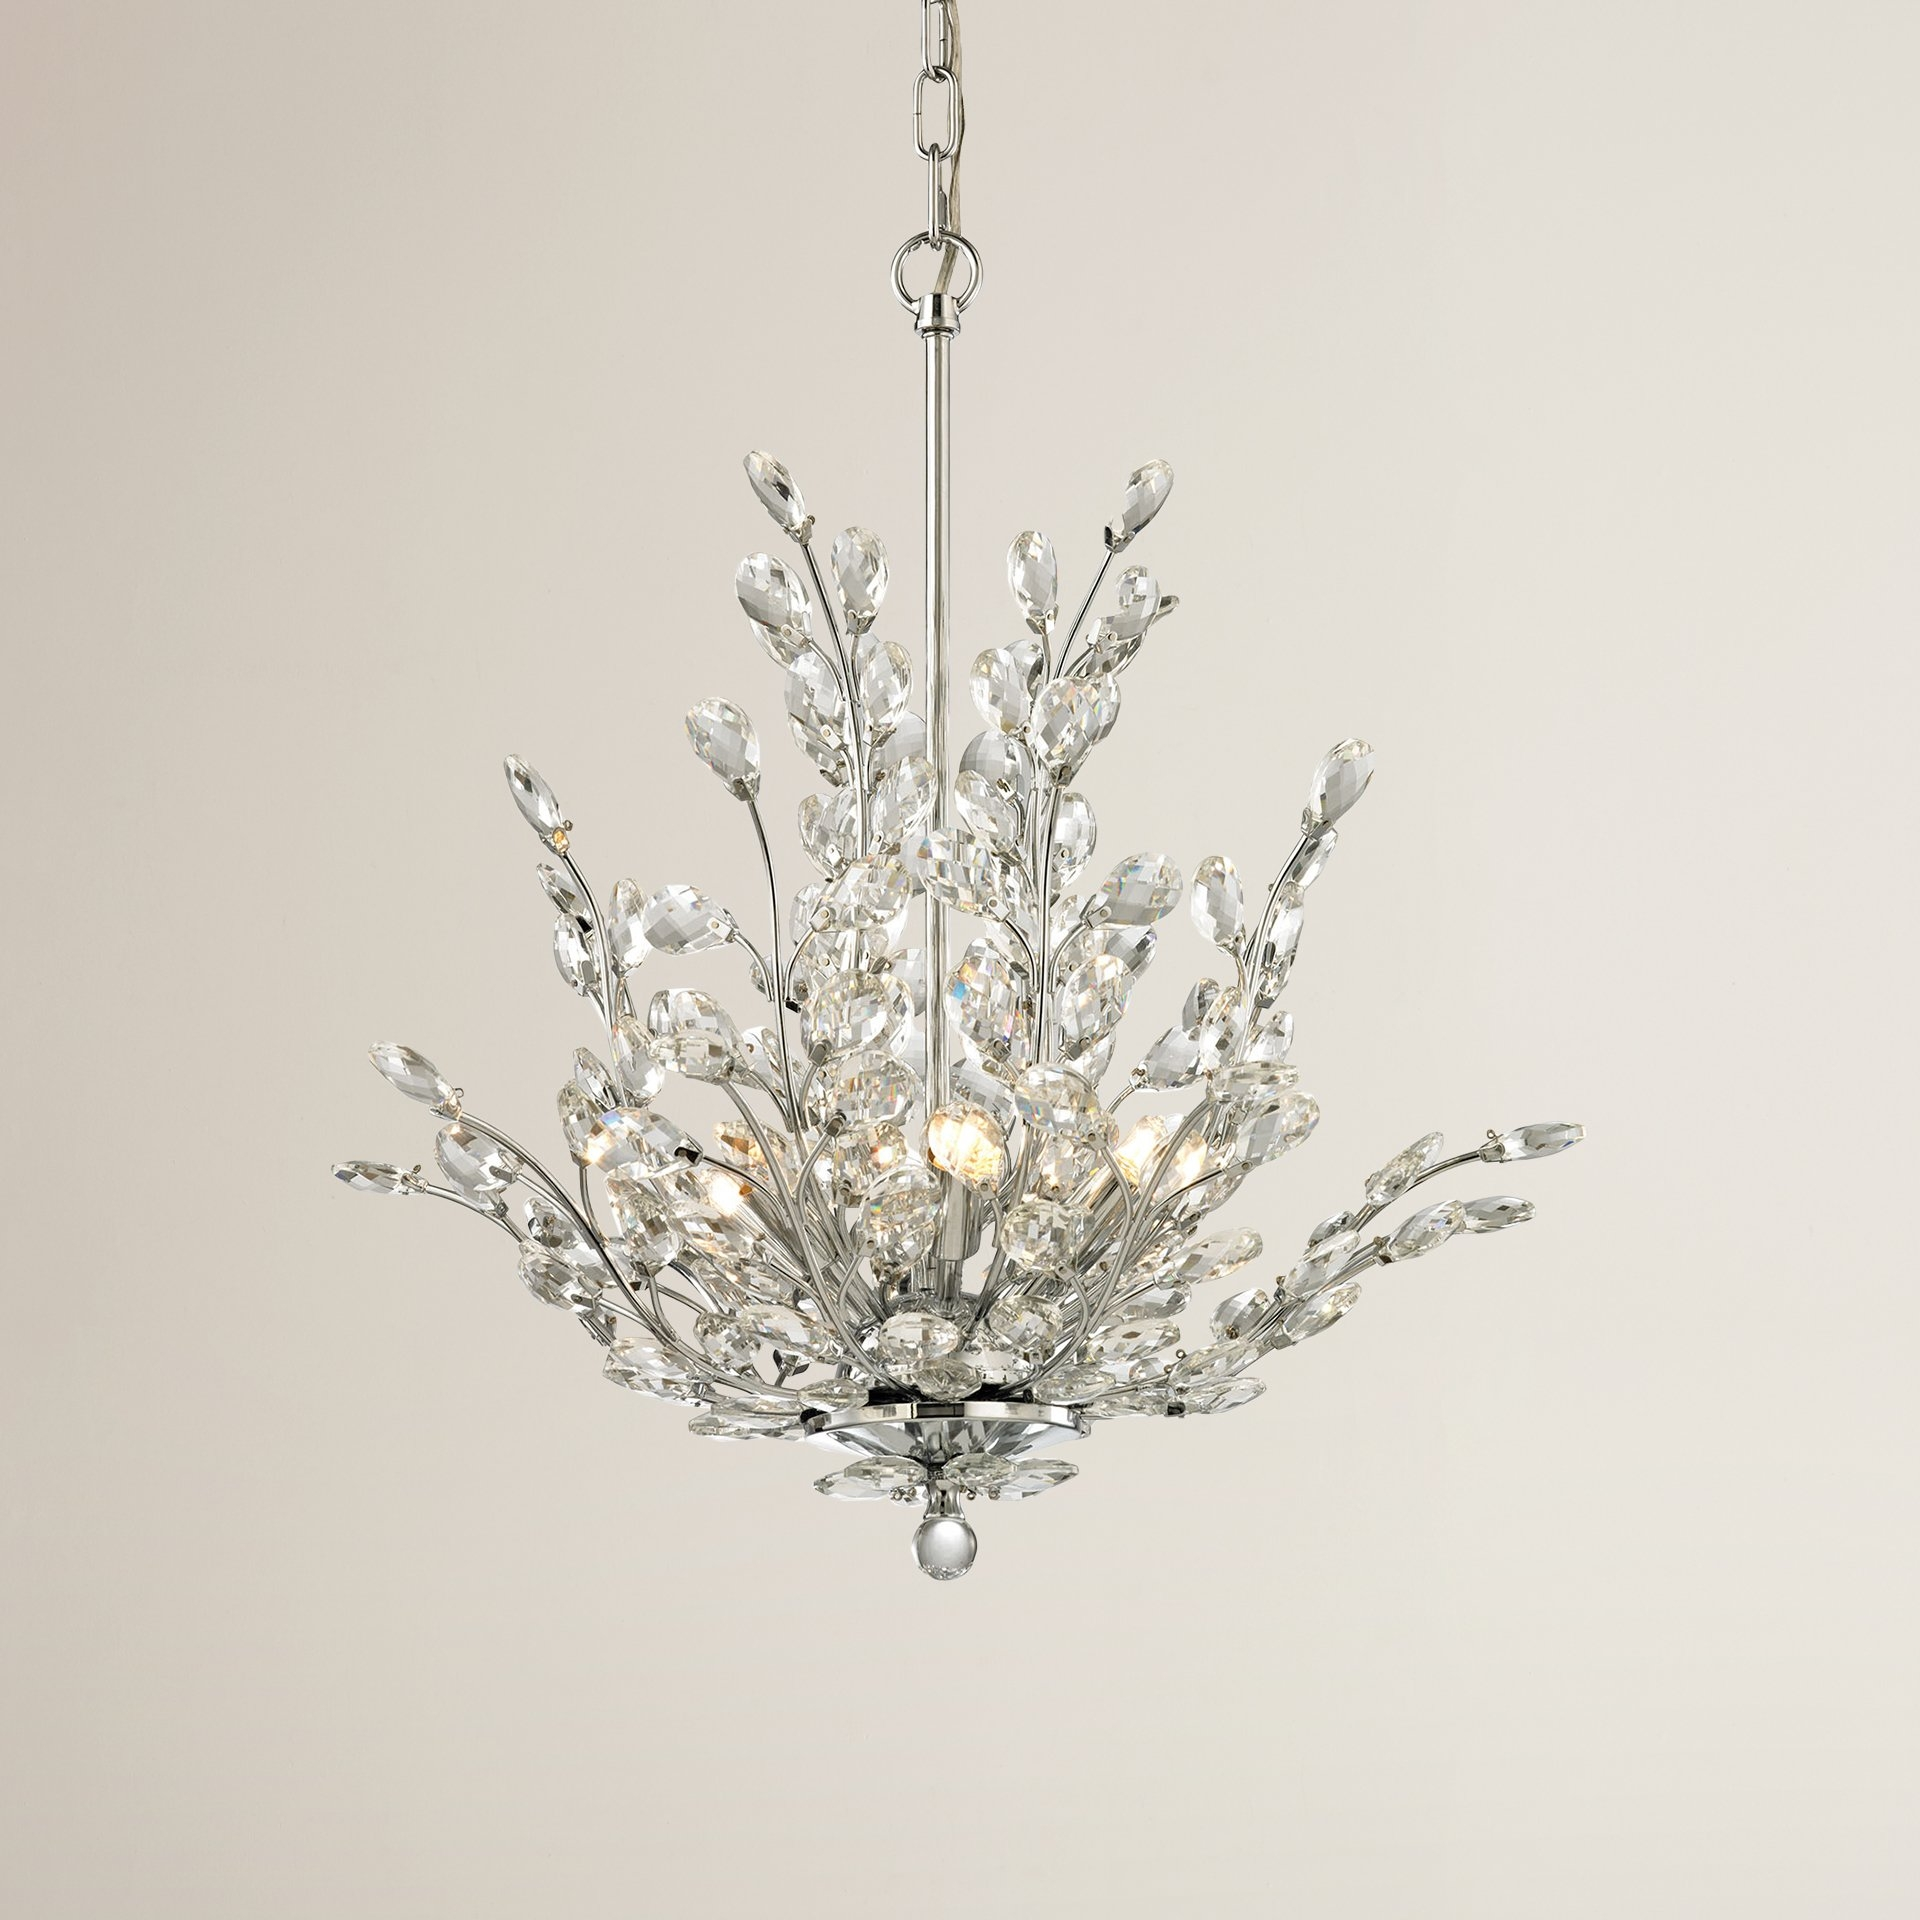 House Of Hampton Ryde 6 Light Crystal Chandelier Reviews Wayfair For Branch Crystal Chandelier (Image 10 of 15)